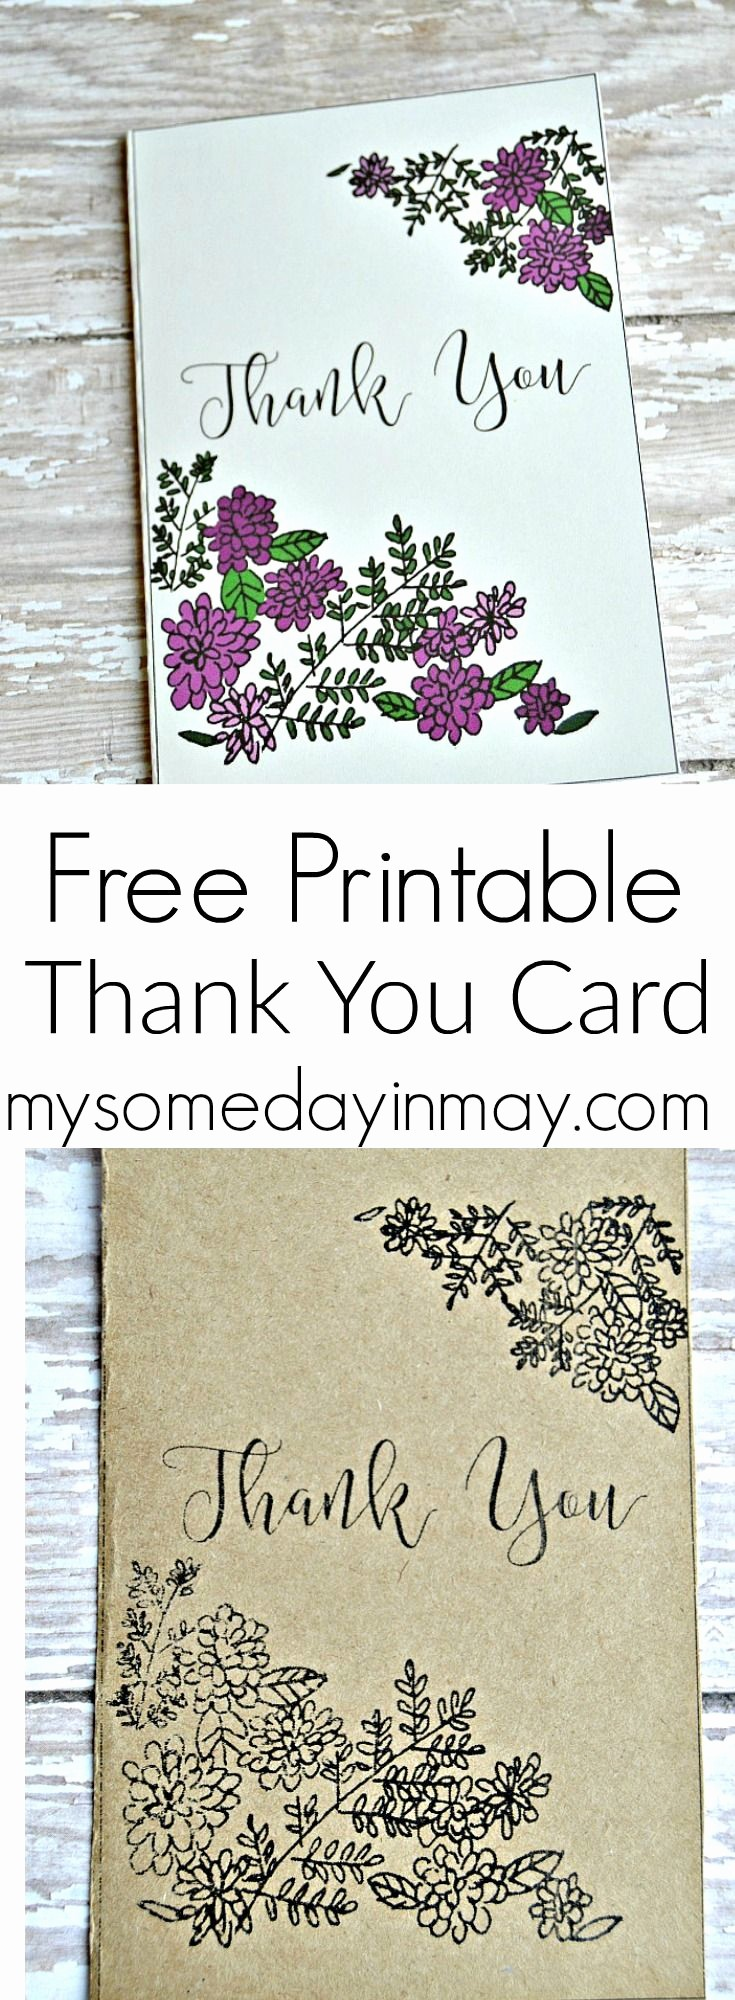 Free Printable Thank You Certificates Inspirational 34 Best Thank You Cards Images On Pinterest